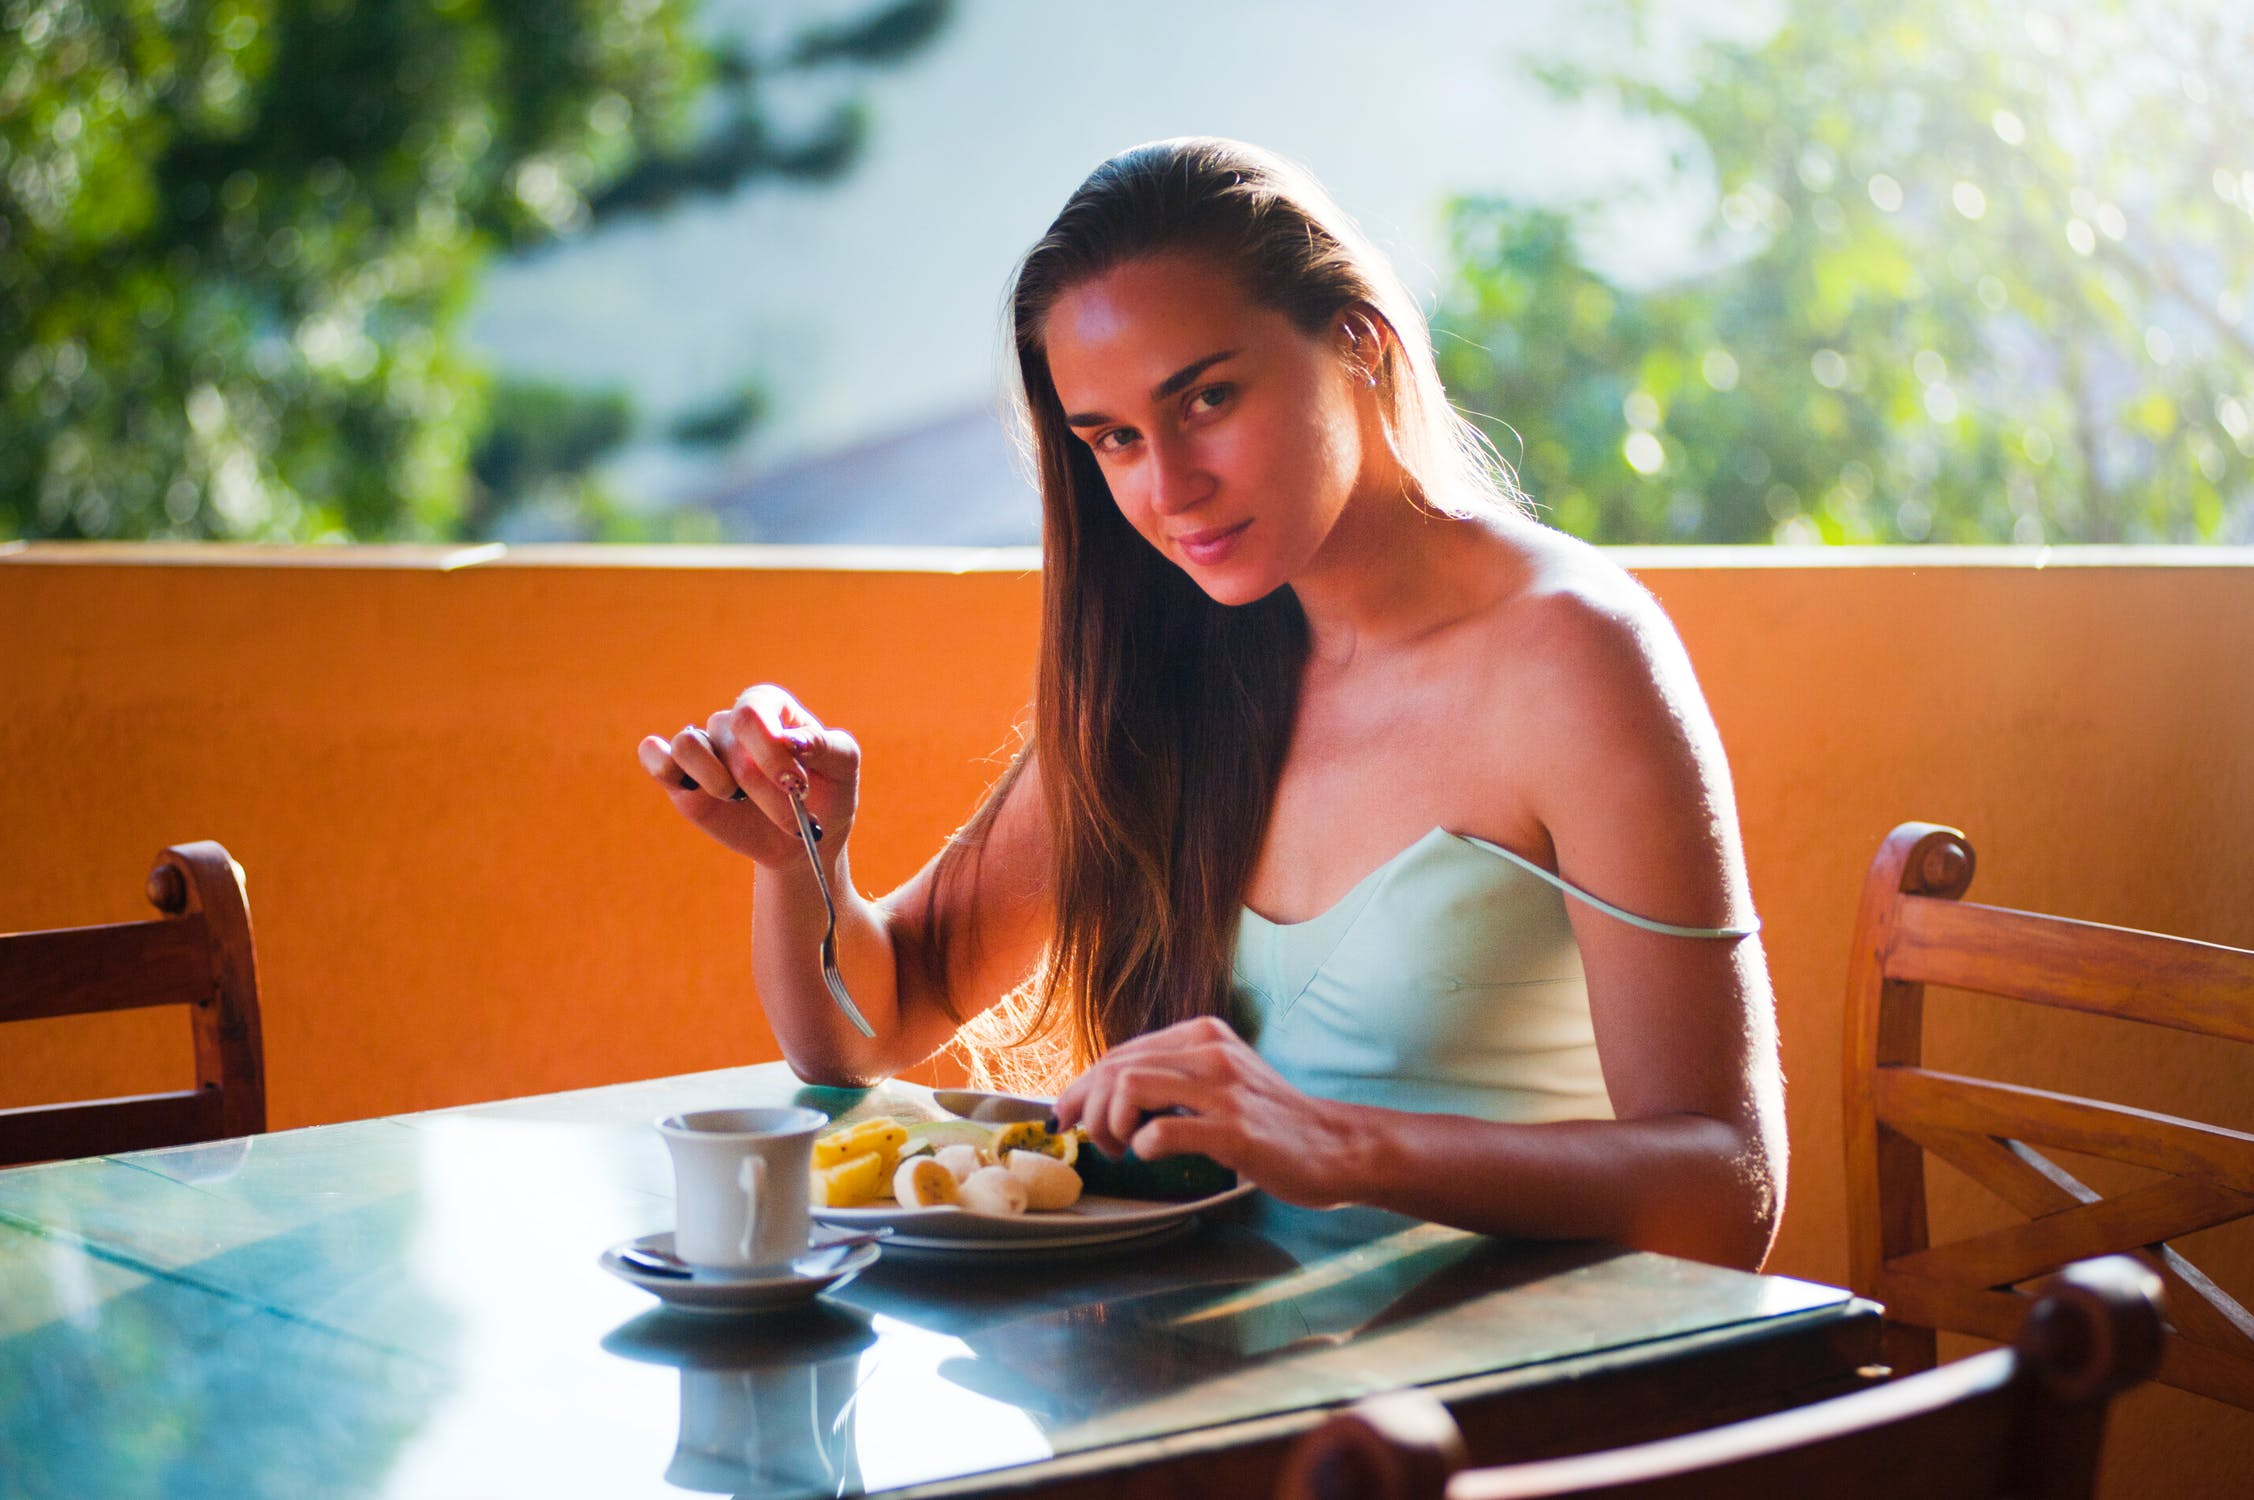 8 Things You Can Do Today To Take Care Of Yourself